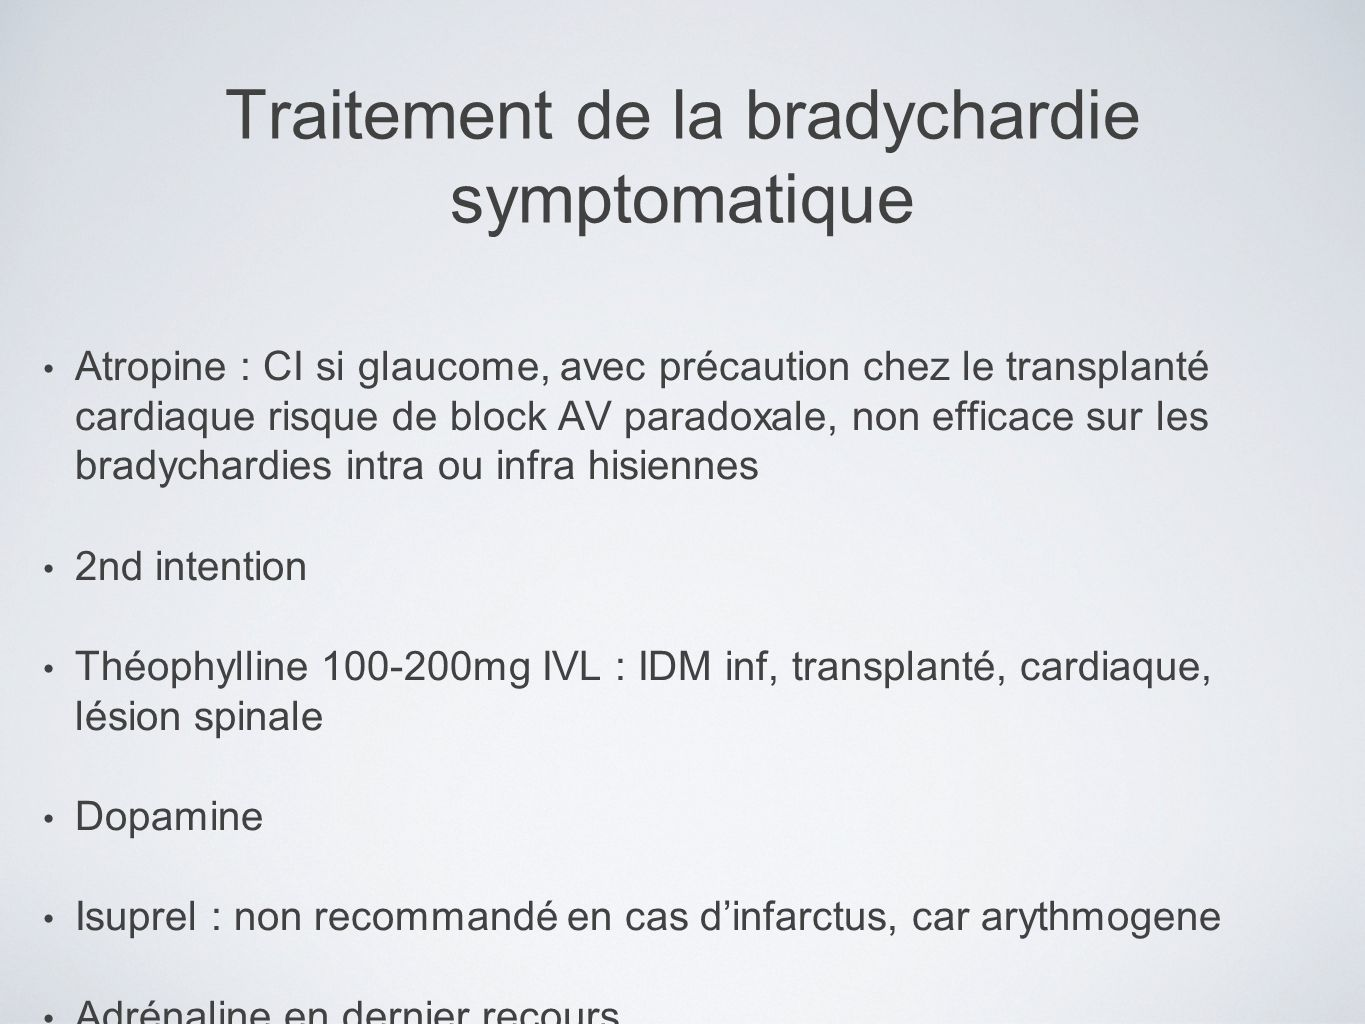 Traitement de la bradychardie symptomatique